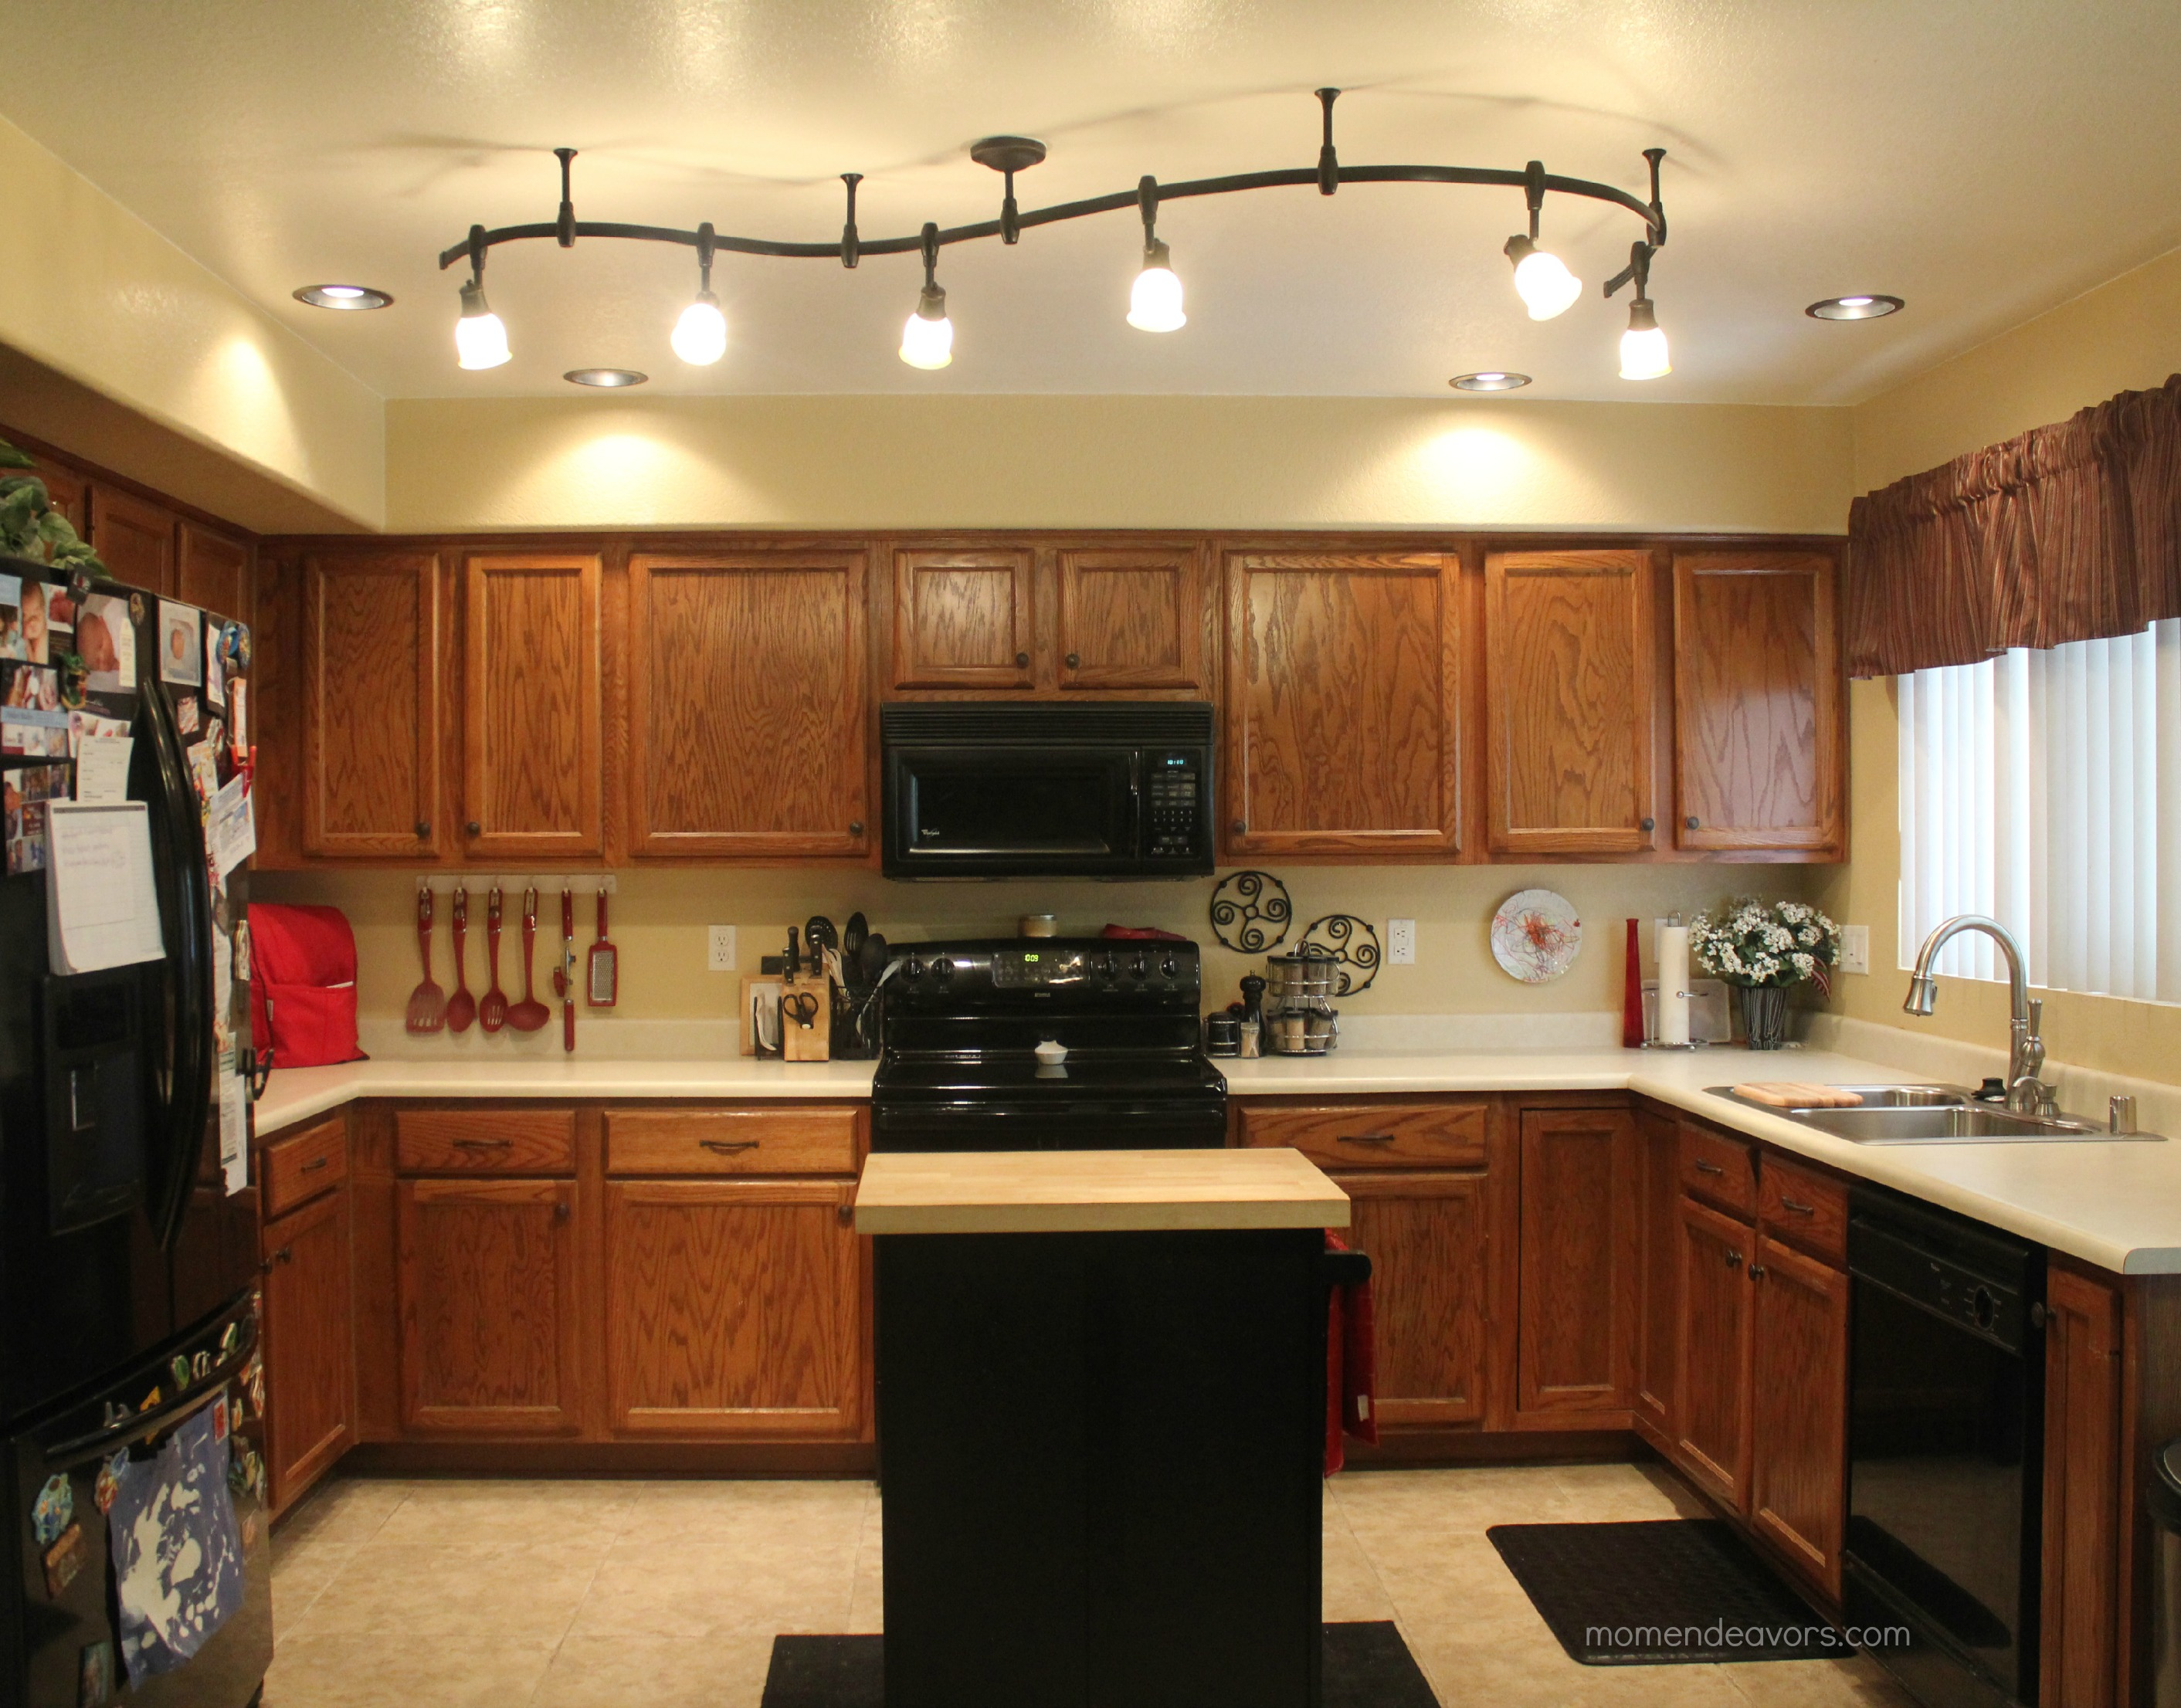 mini kitchen remodel kitchen lights ideas Now